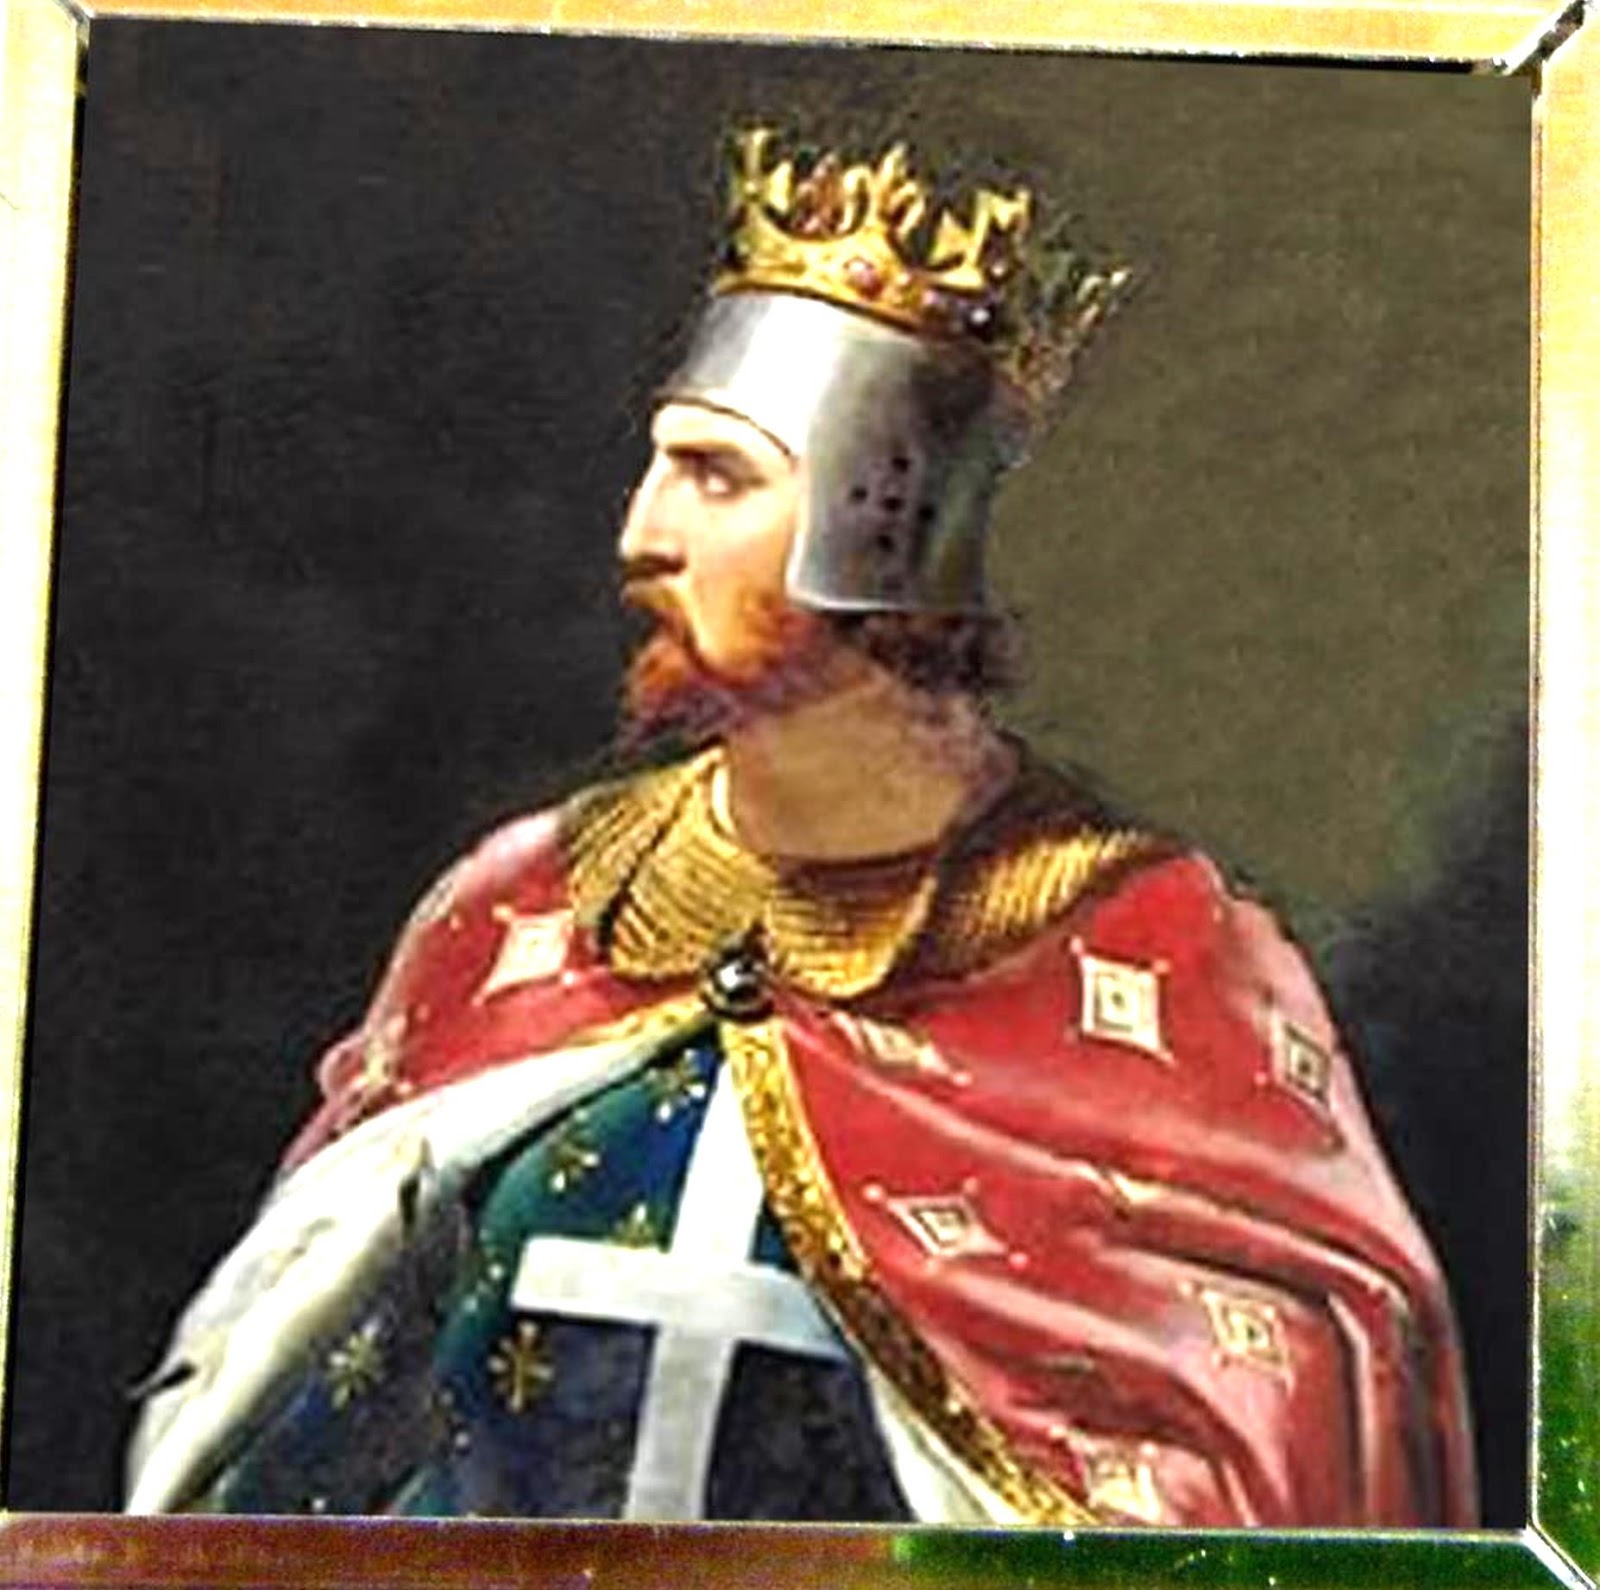 a history of the reign of richard the lion hearted a king of england Richard i, king of england that the old king died broken-hearted fully with the reign and personal character of richard davis, a history of england in six.